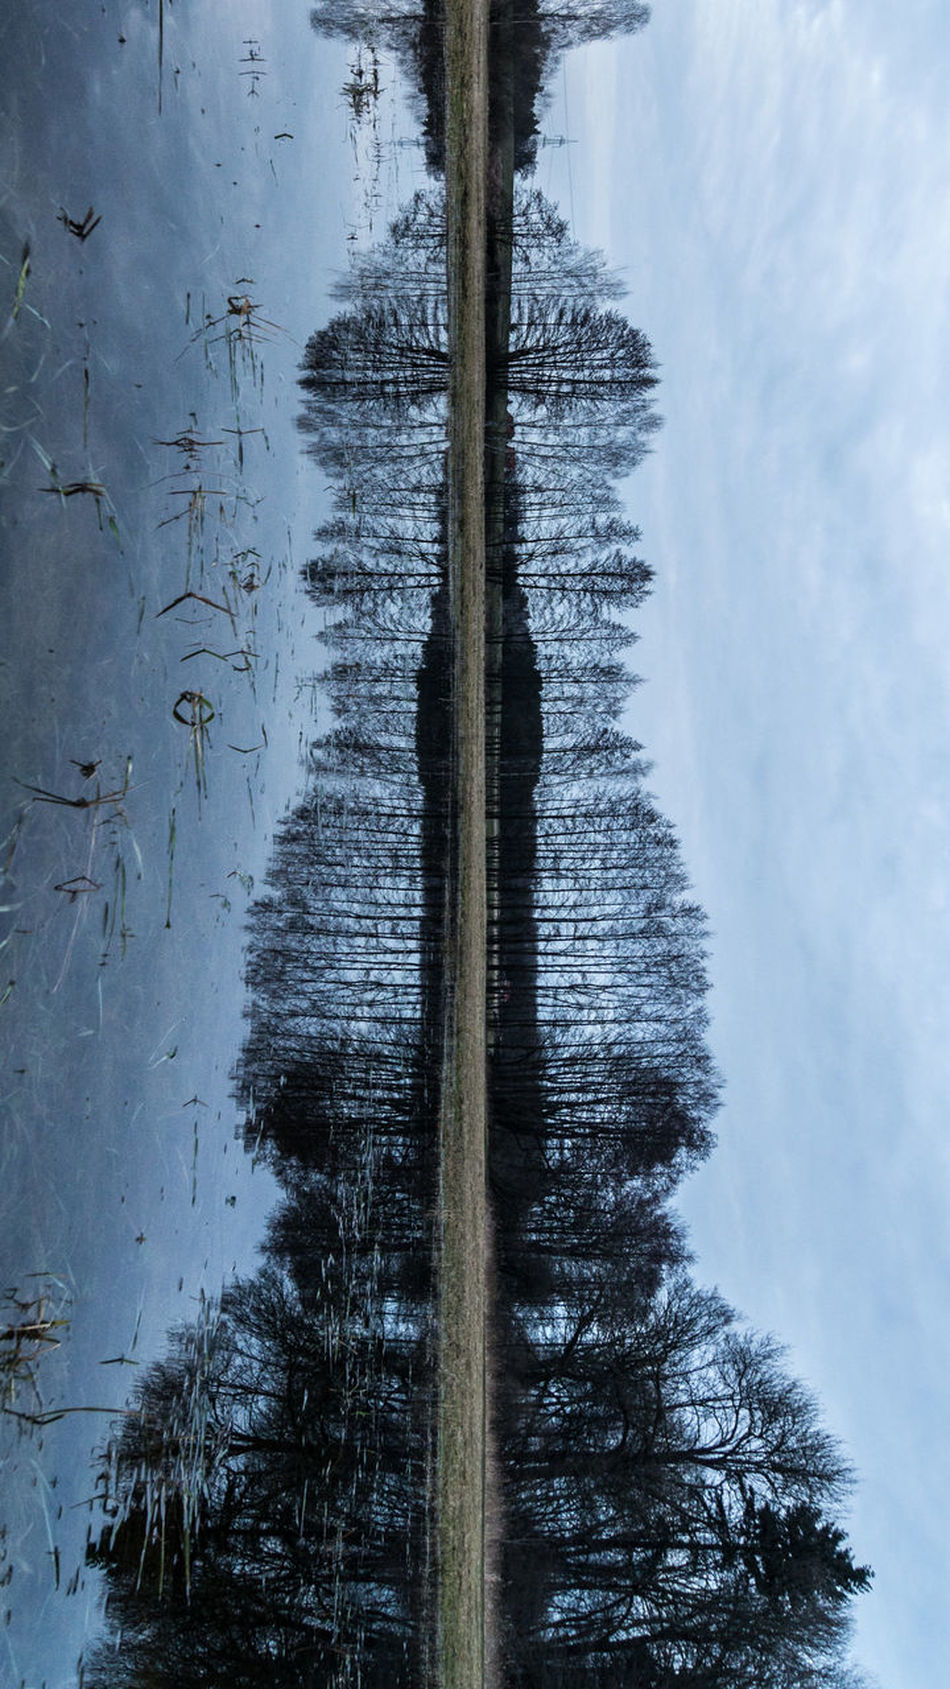 lake and trees and fish Beauty In Nature Cold Temperature DEAD FISH EyeEm Best Shots EyeEm Nature Lover Fish Lake Nature Outdoors Reflection Sunday_flip Tranquil Scene Tree Water Water Reflections Waterfront Winter